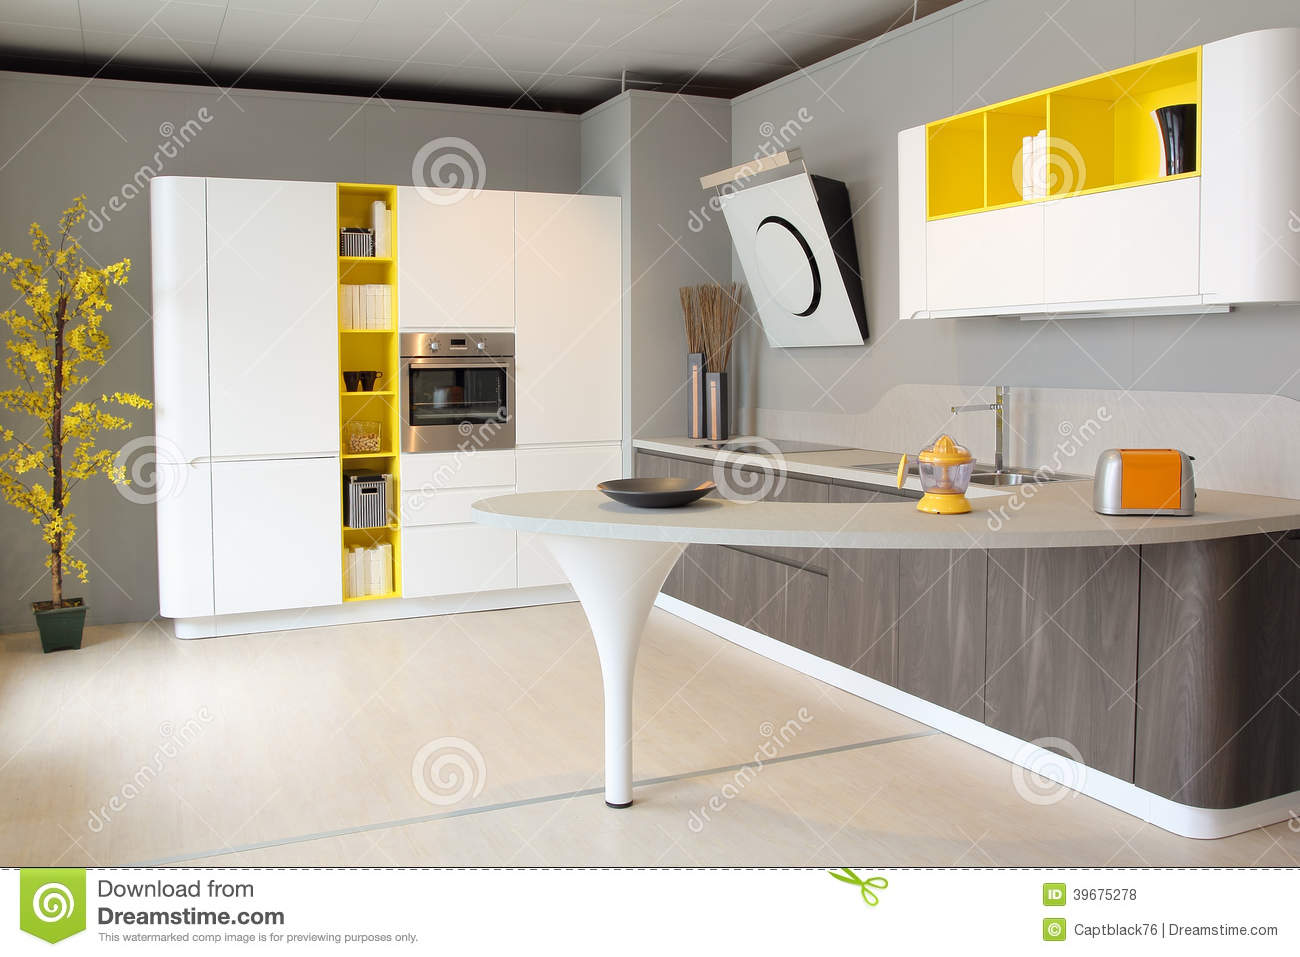 Beautiful Cucine Moderne Gialle Ideas - Home Design Ideas 2017 ...